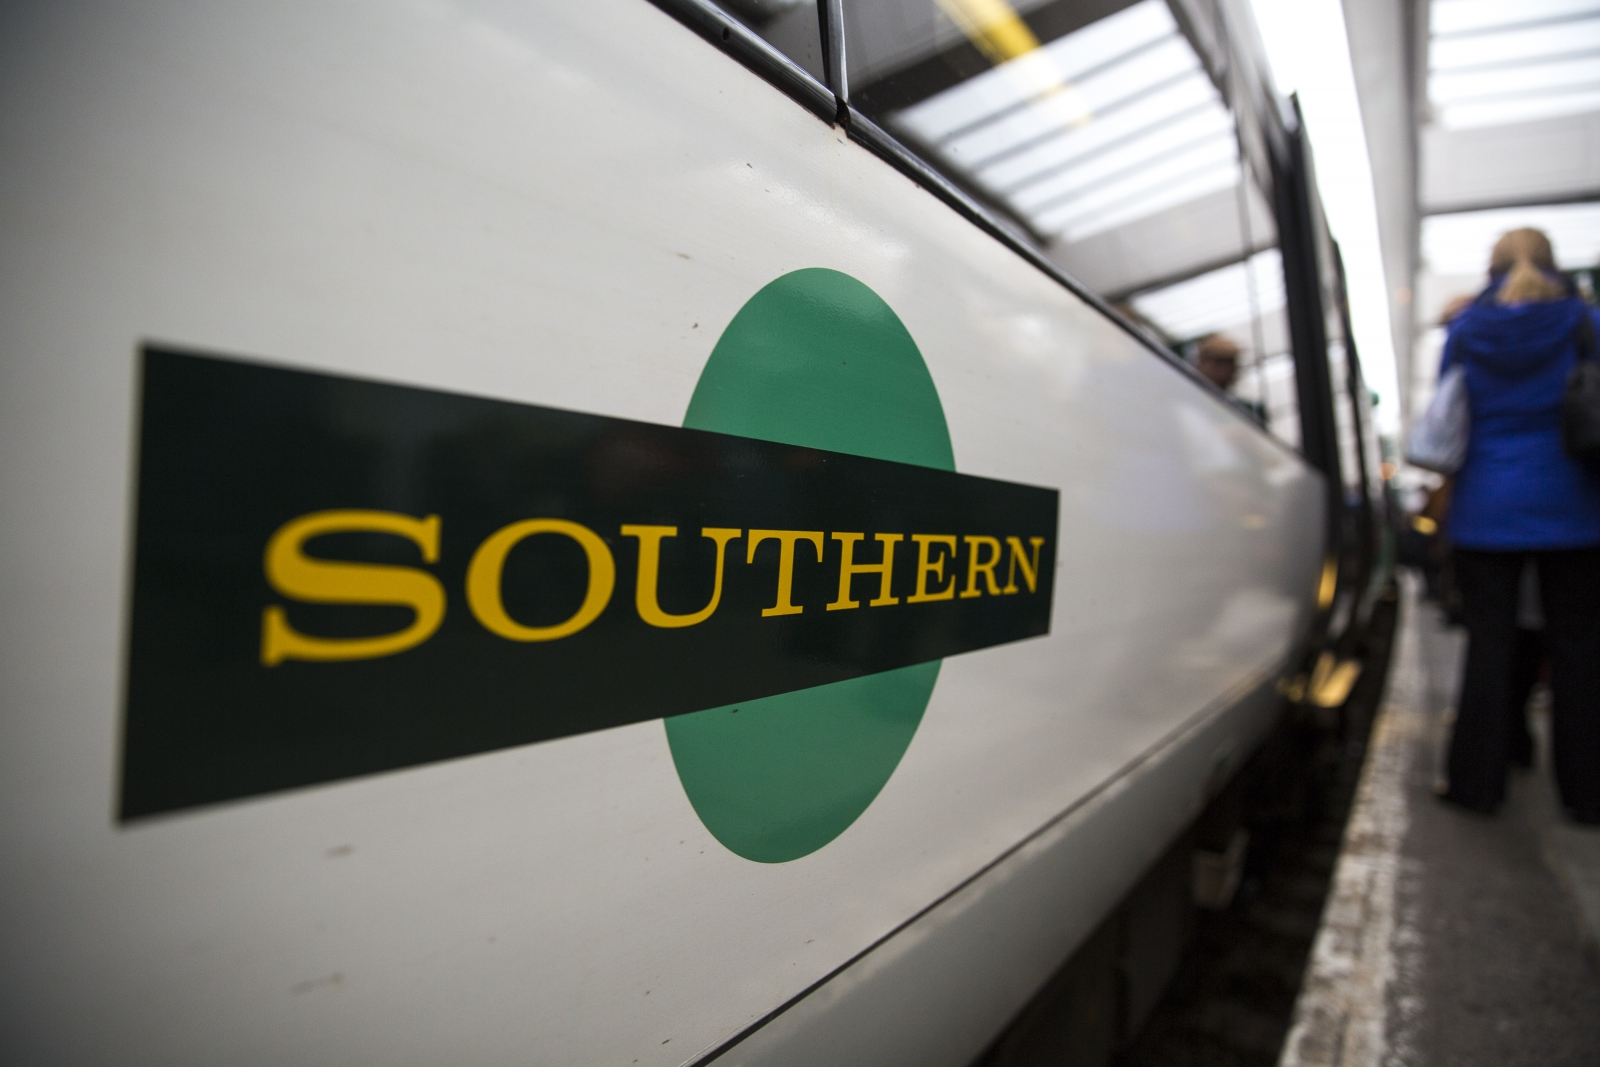 Southern to spend £13.4m to improve rail service